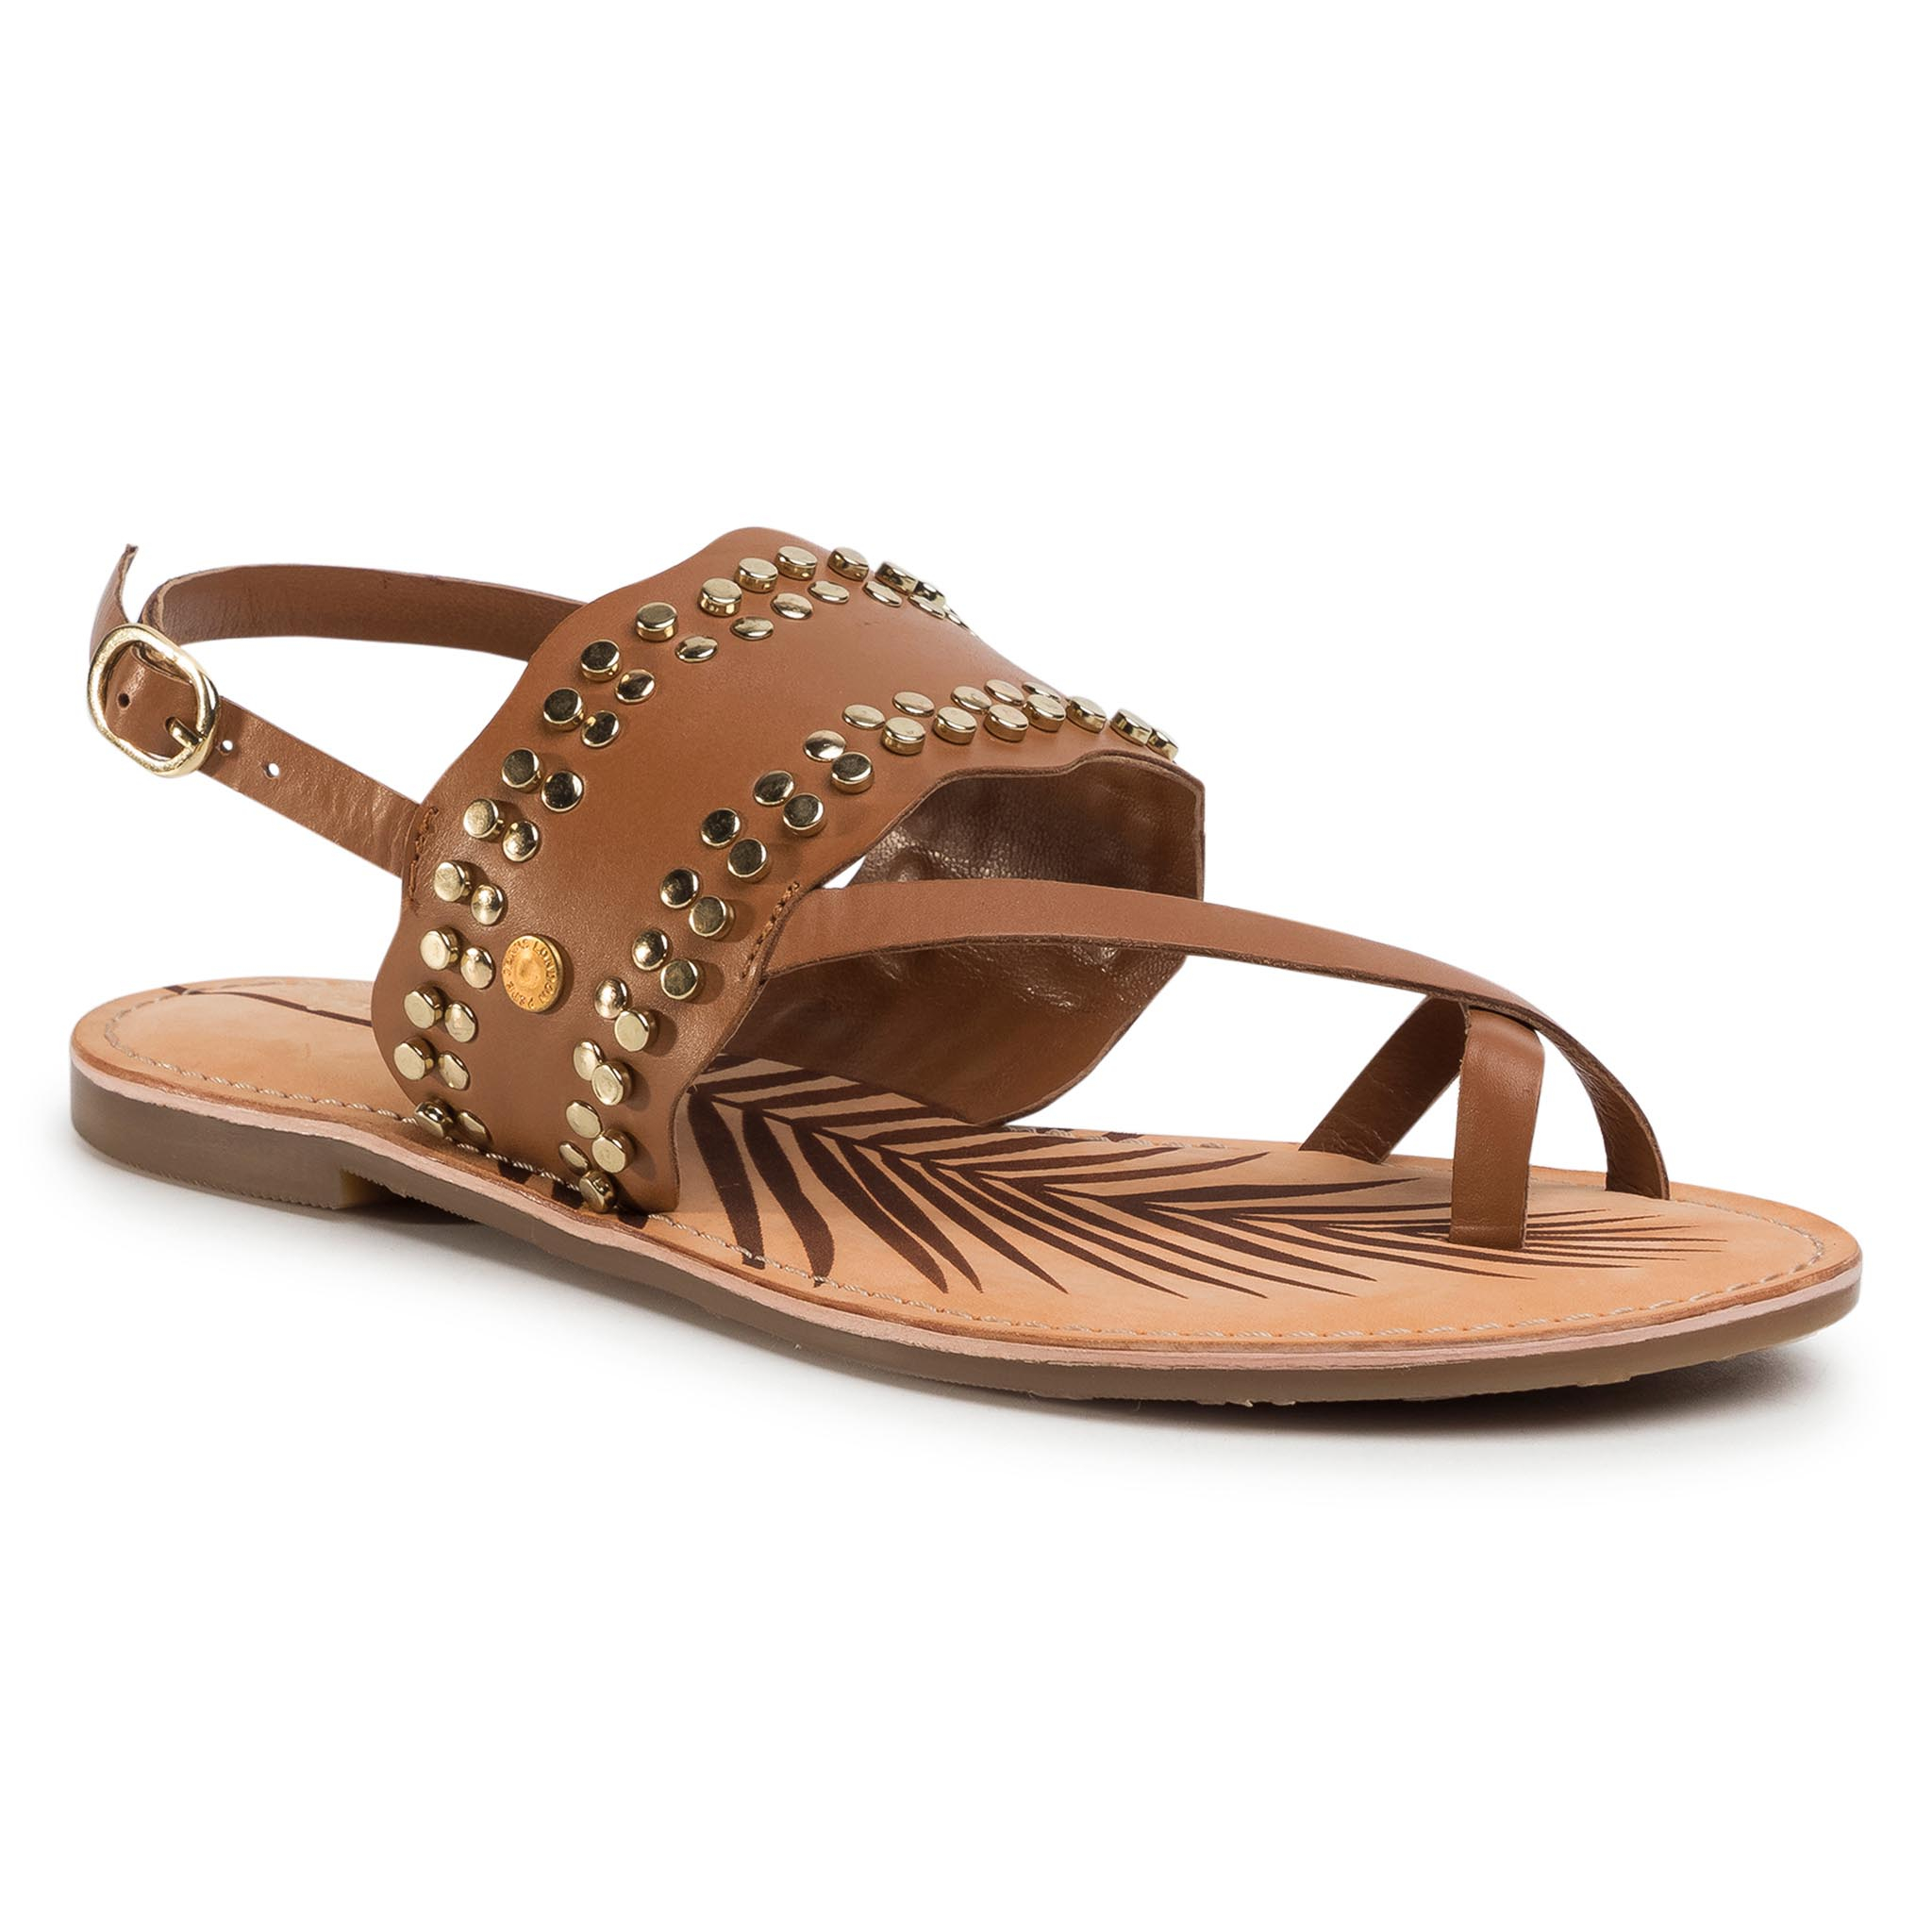 Sandale PEPE JEANS - March Studs PLS90447 Tobacco 859